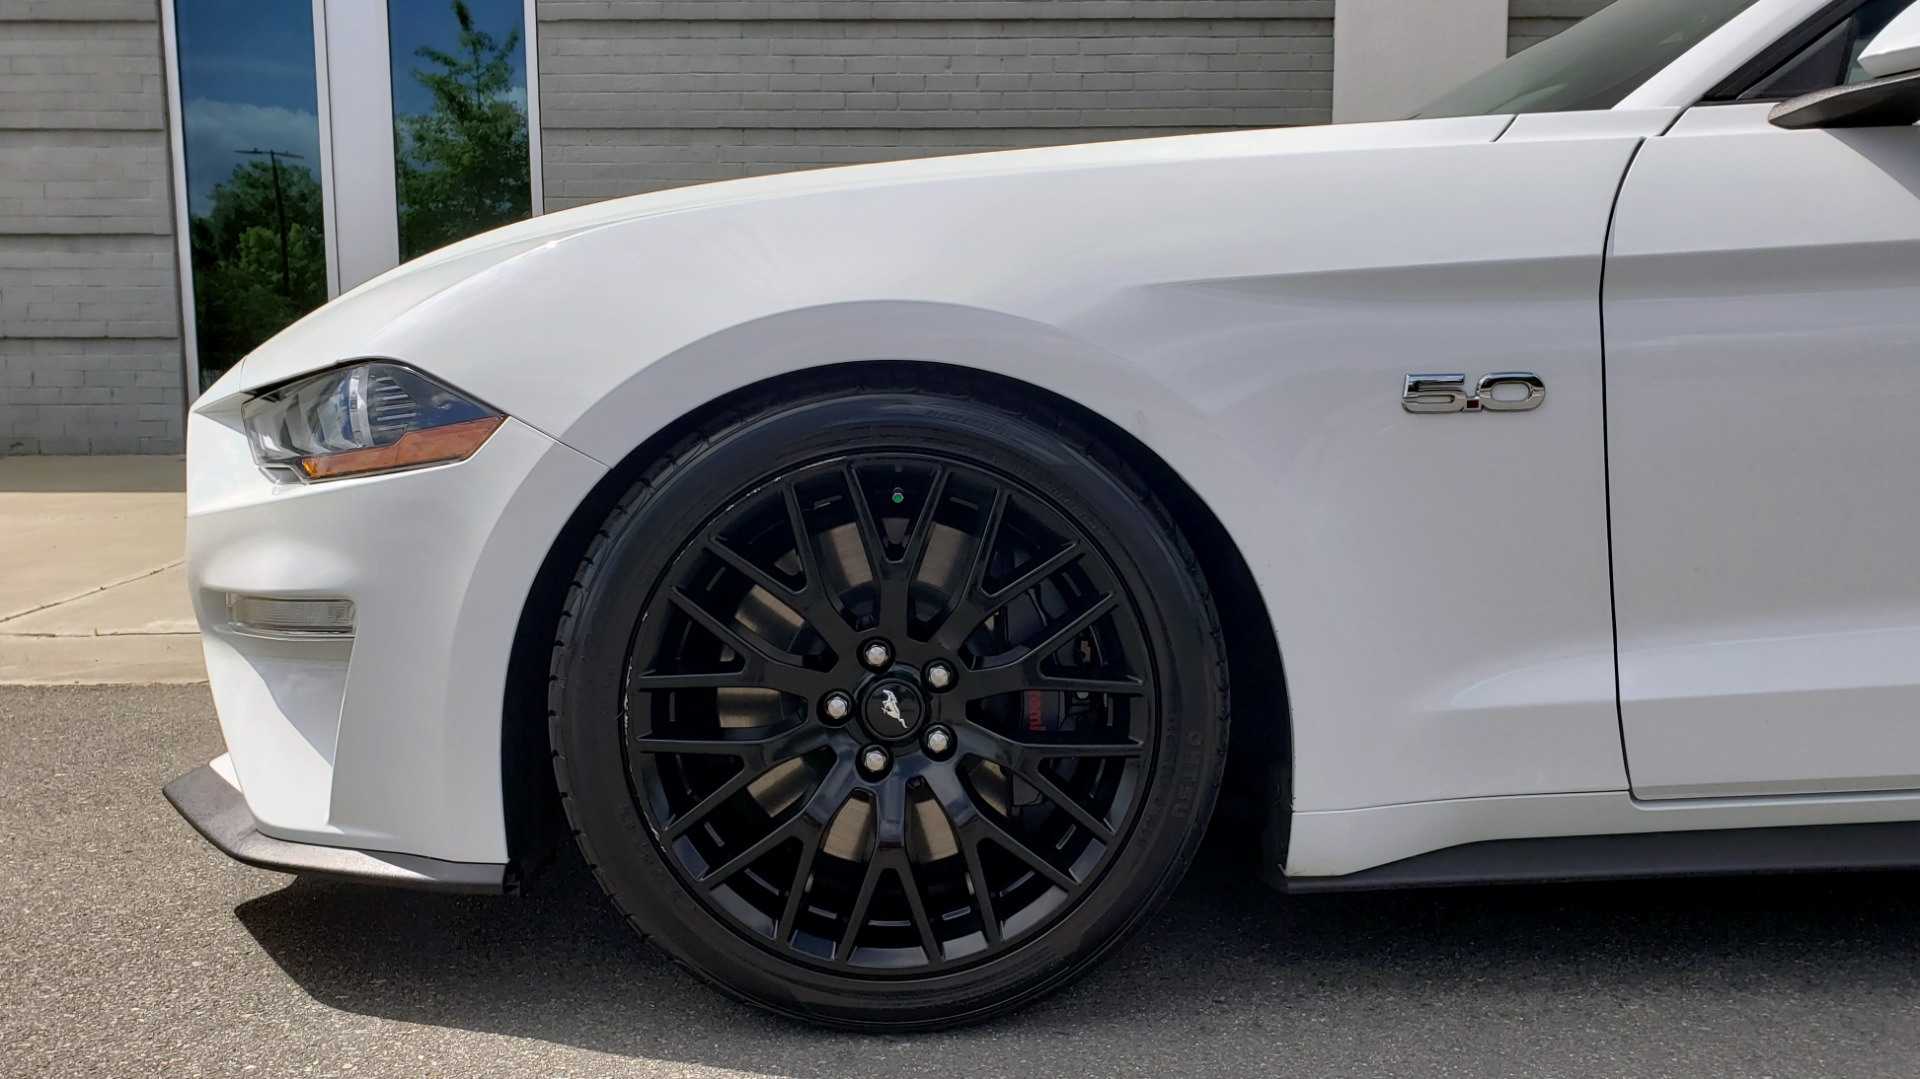 Used 2018 Ford MUSTANG GT COUPE / 5.0L V8 / AUTO / PERF PKG / REARVIEW / 19IN WHLS for sale Sold at Formula Imports in Charlotte NC 28227 67